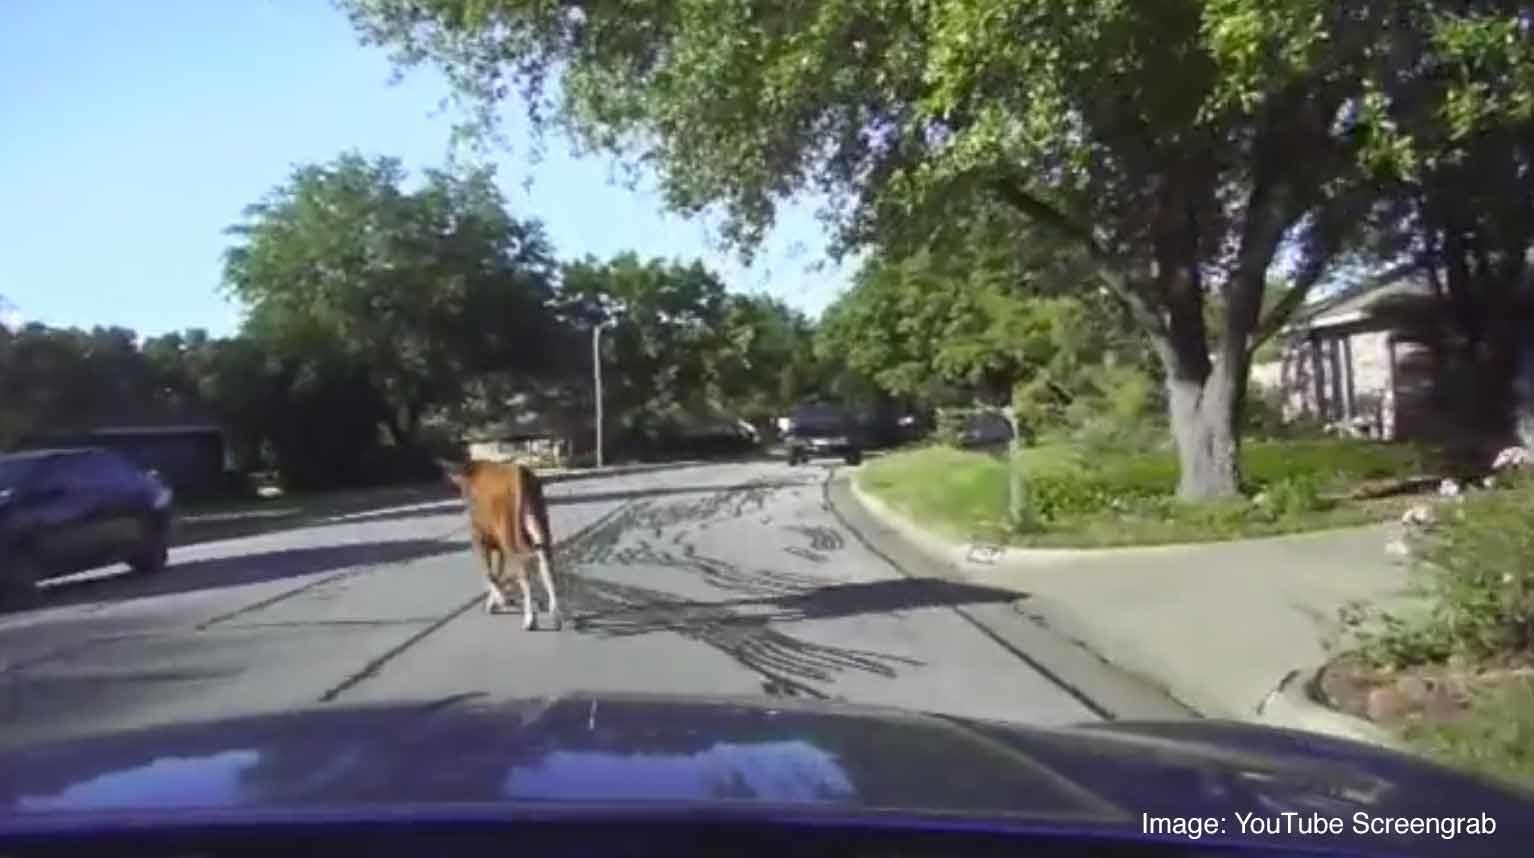 Watch: Hot Pursuit Of Bull On Leisurely Stroll Through Neighborhood